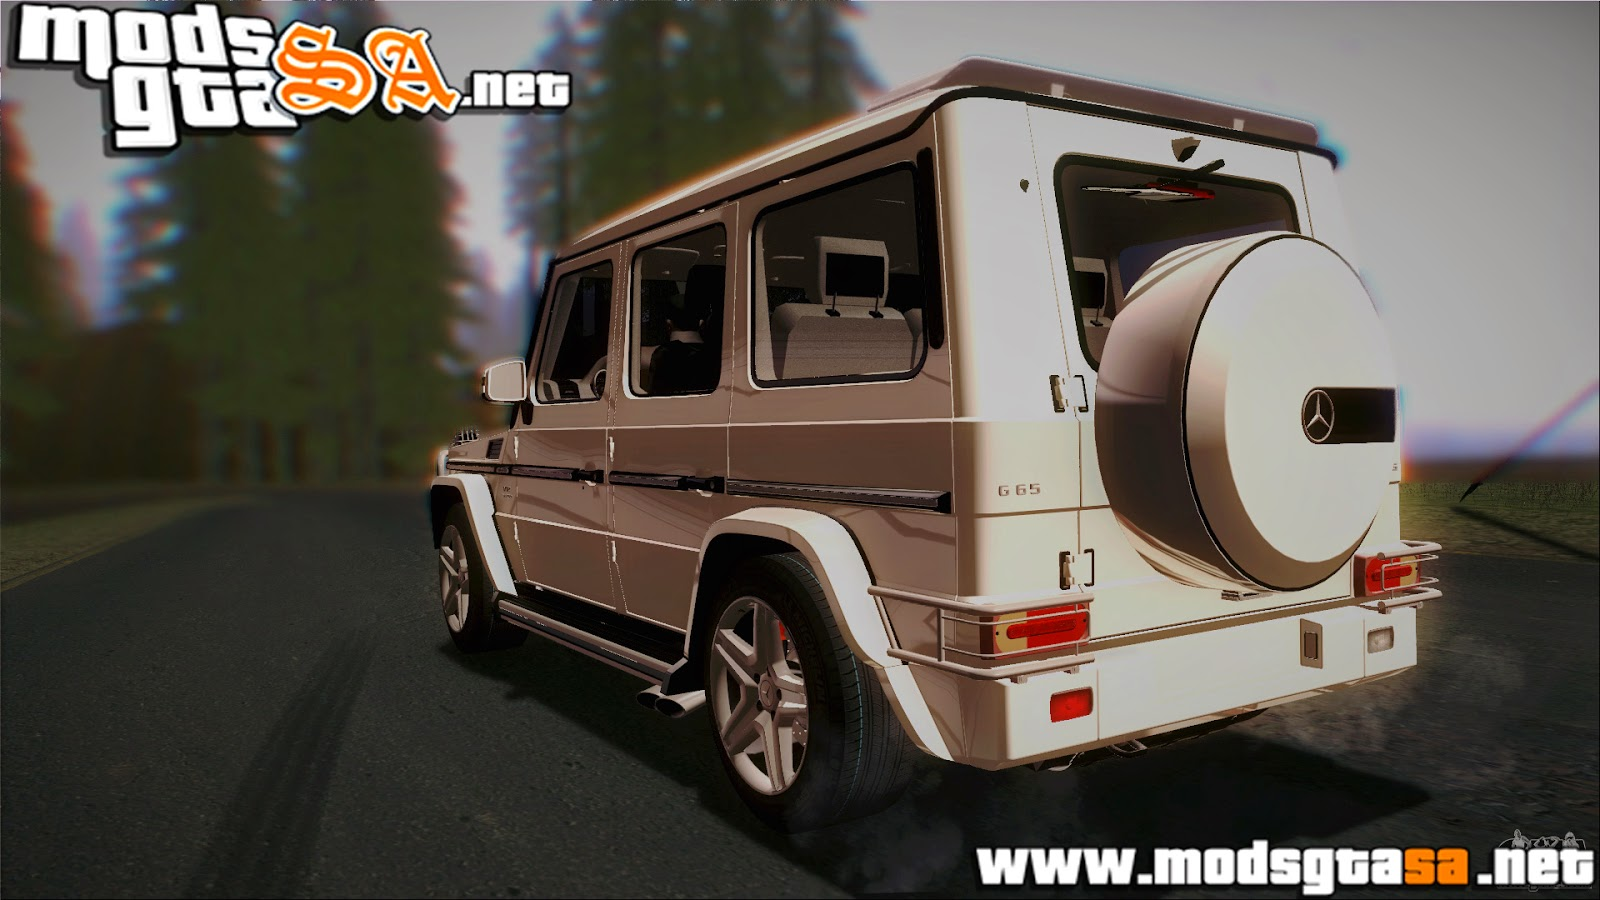 SA - Mercedes-Benz G65 2013 AMG Body